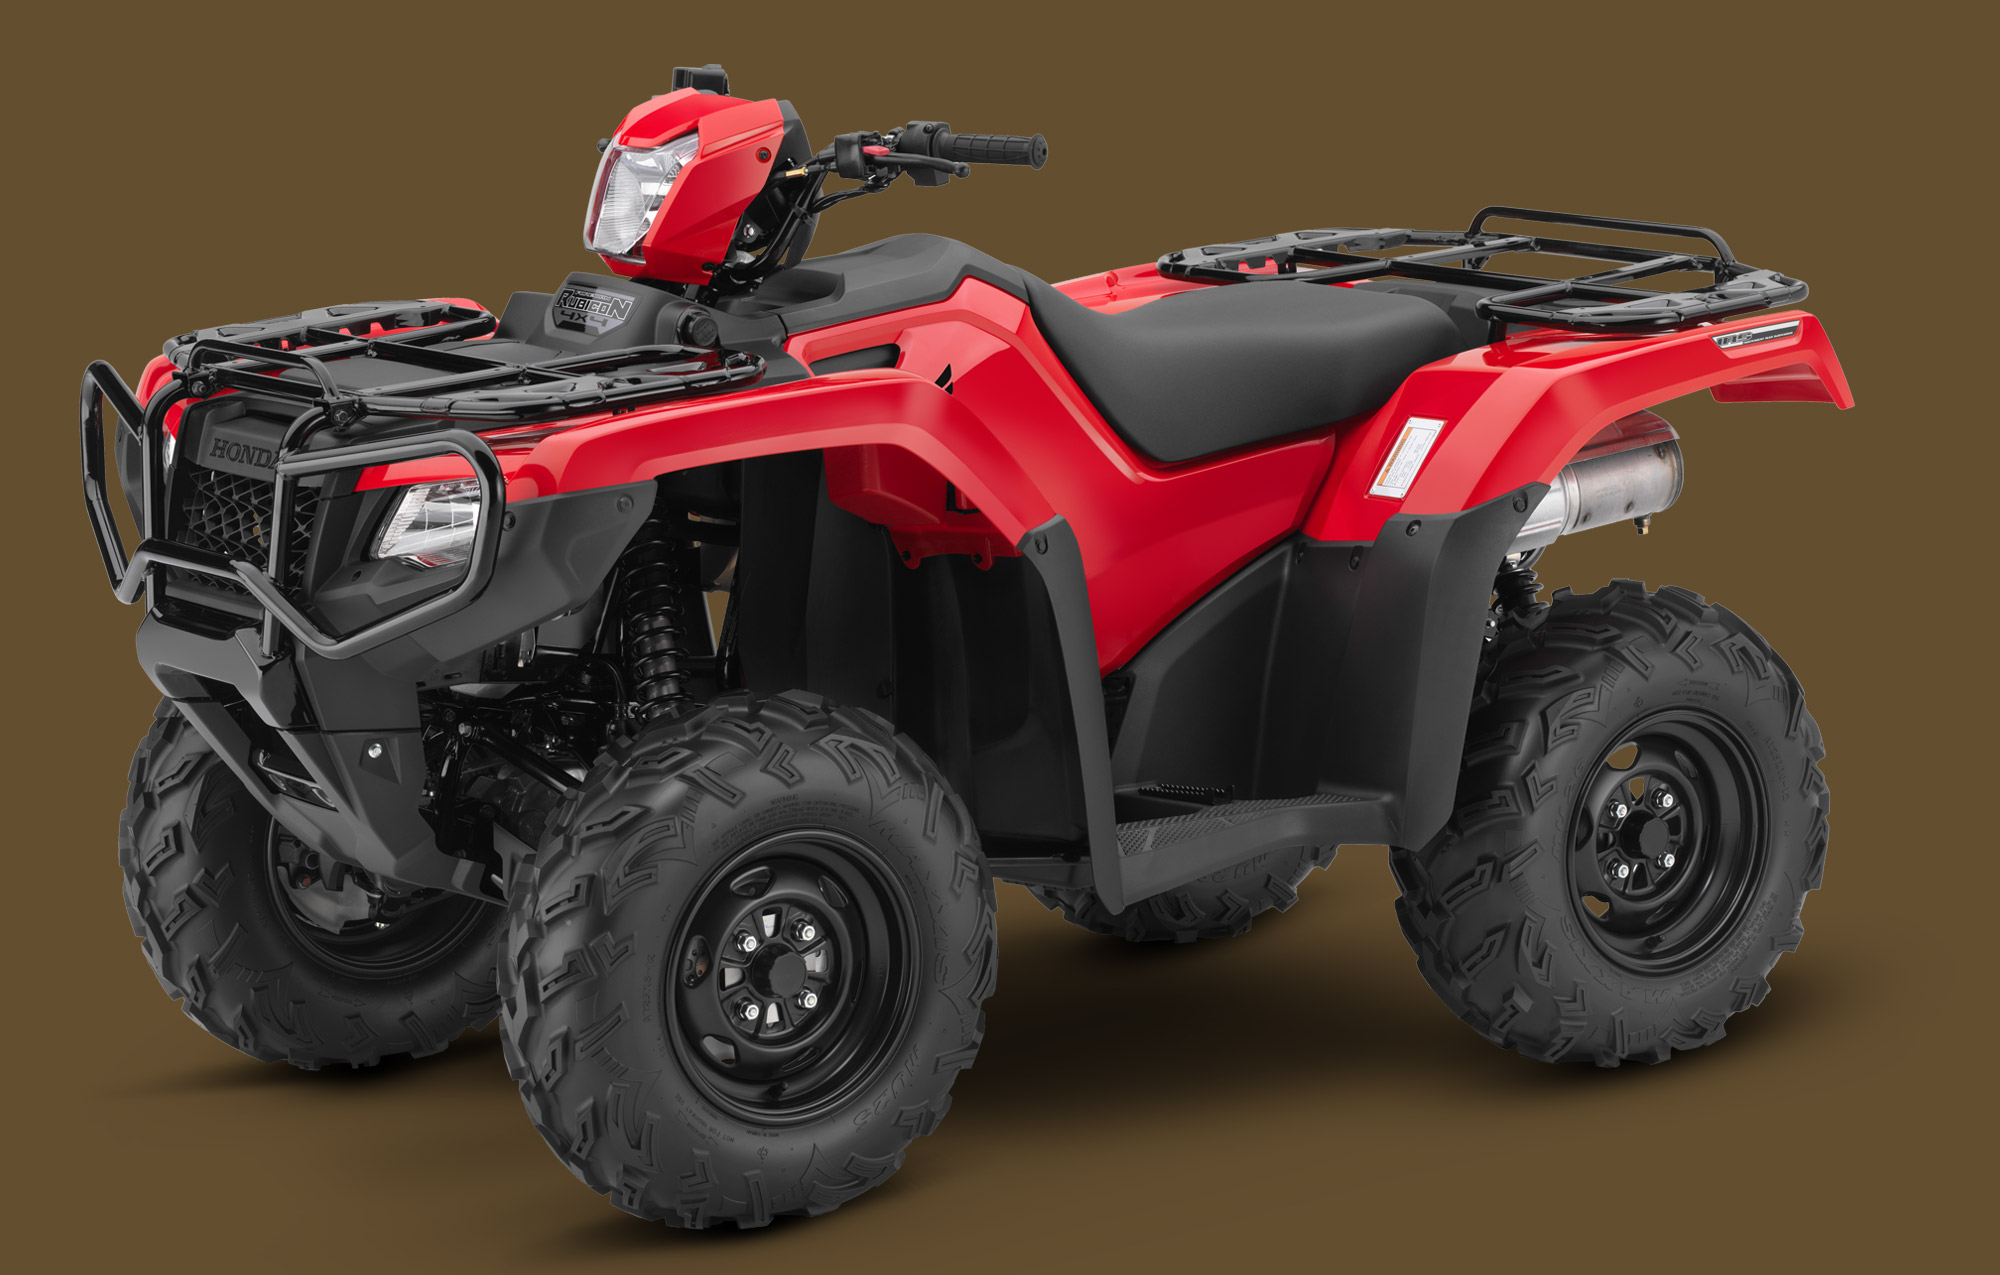 2015 honda fourtrax foreman rubicon 4x4 arrives in 6 versions autoevolution. Black Bedroom Furniture Sets. Home Design Ideas